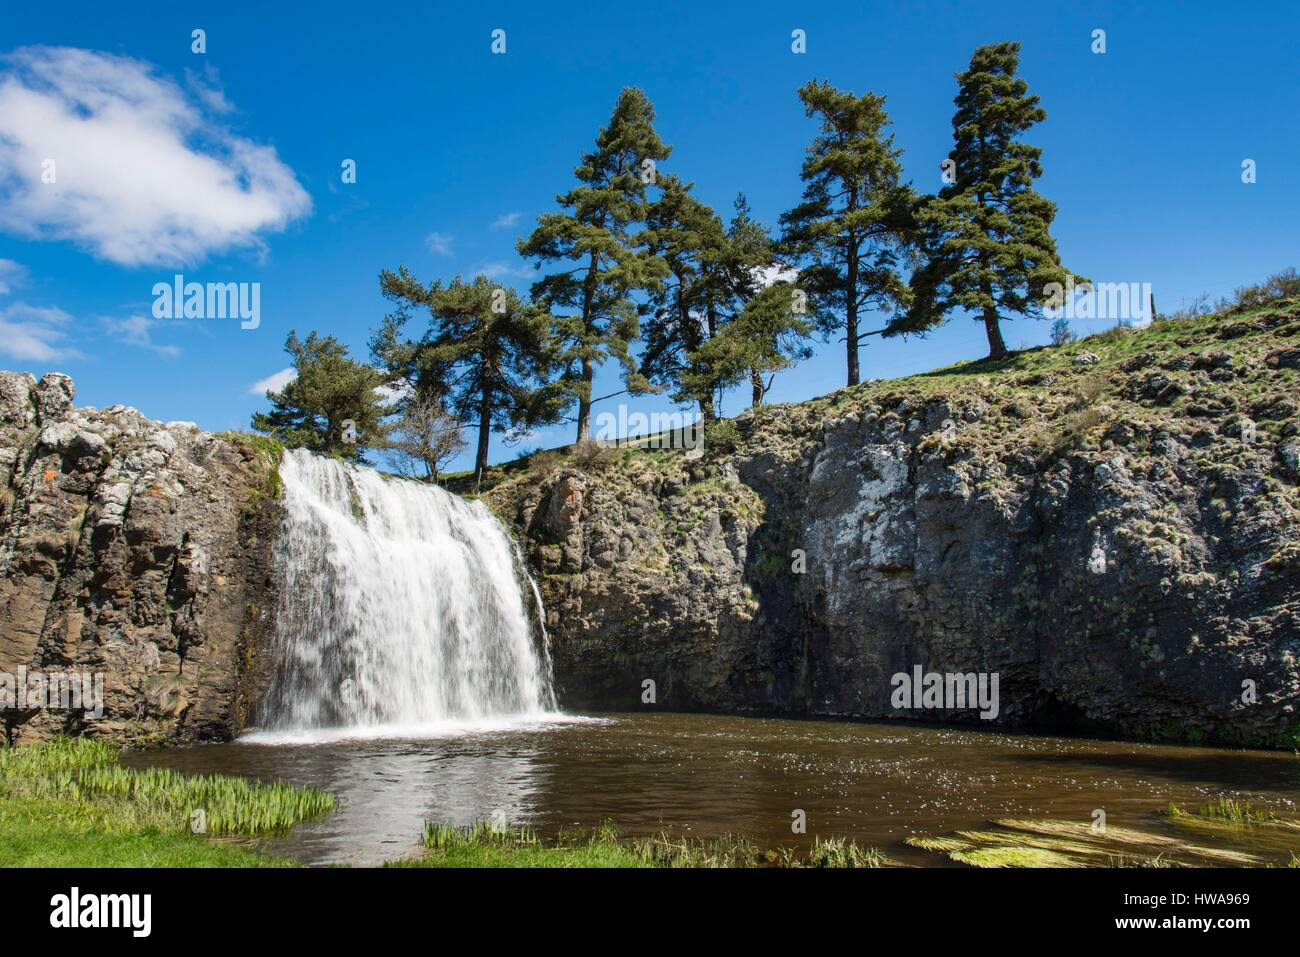 France  Auvergne  Cantal  Allanche  Regional Natural Park Of The Stock Photo  136065729